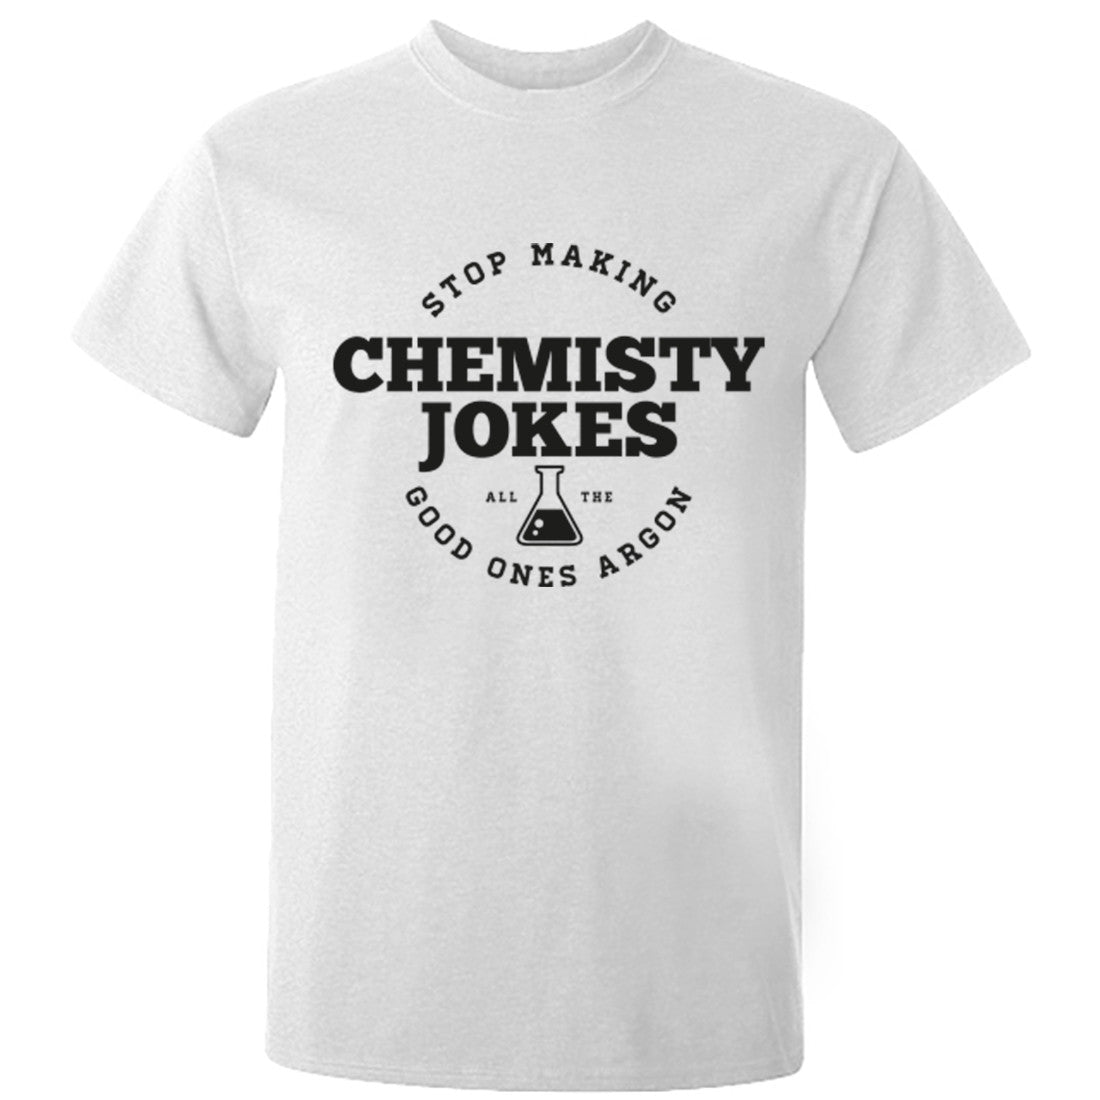 Stop Making Chemistry Jokes All The Good Ones Argon Unisex Fit T-Shirt K0579 - Illustrated Identity Ltd.